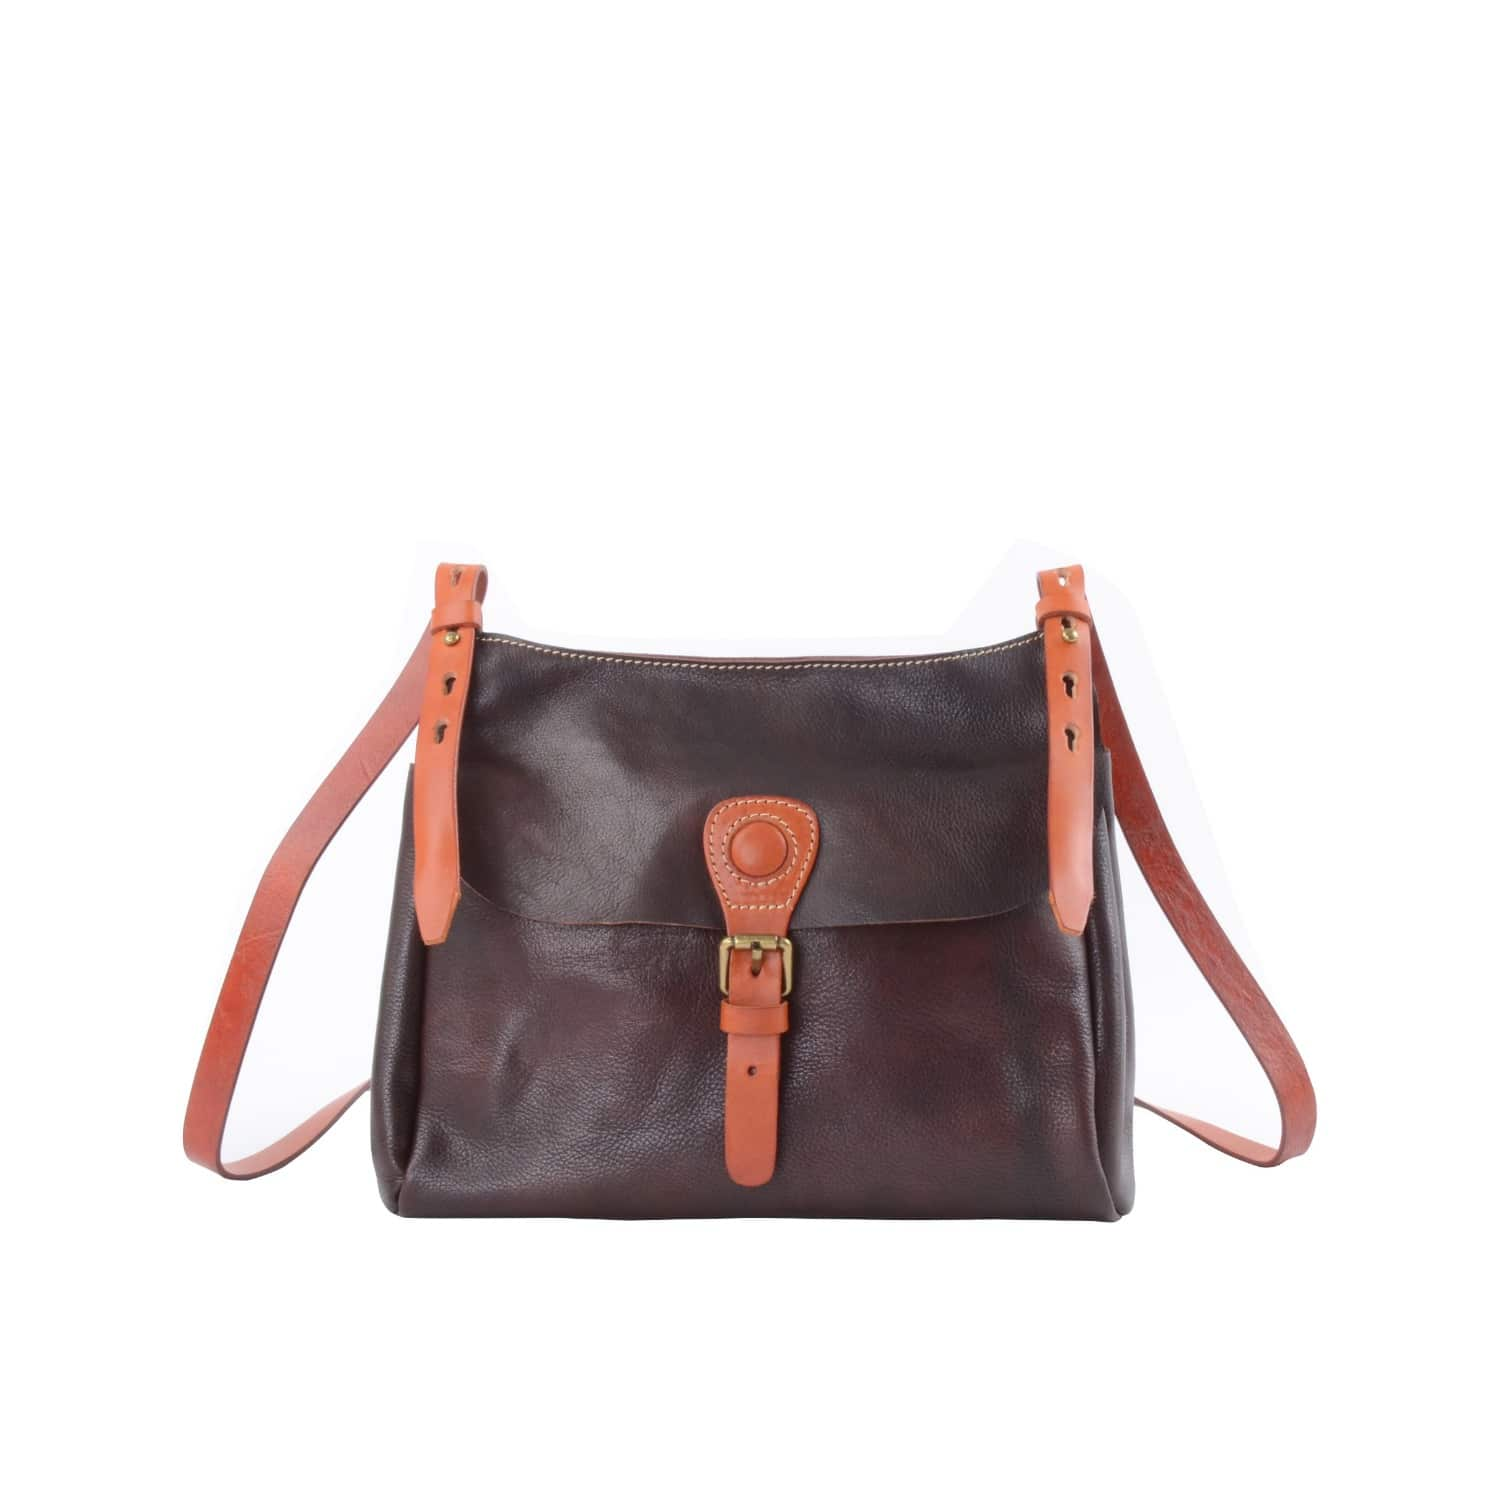 EAZO Soft Leather Tote In Dark Free Shipping Get To Buy 0UiWy